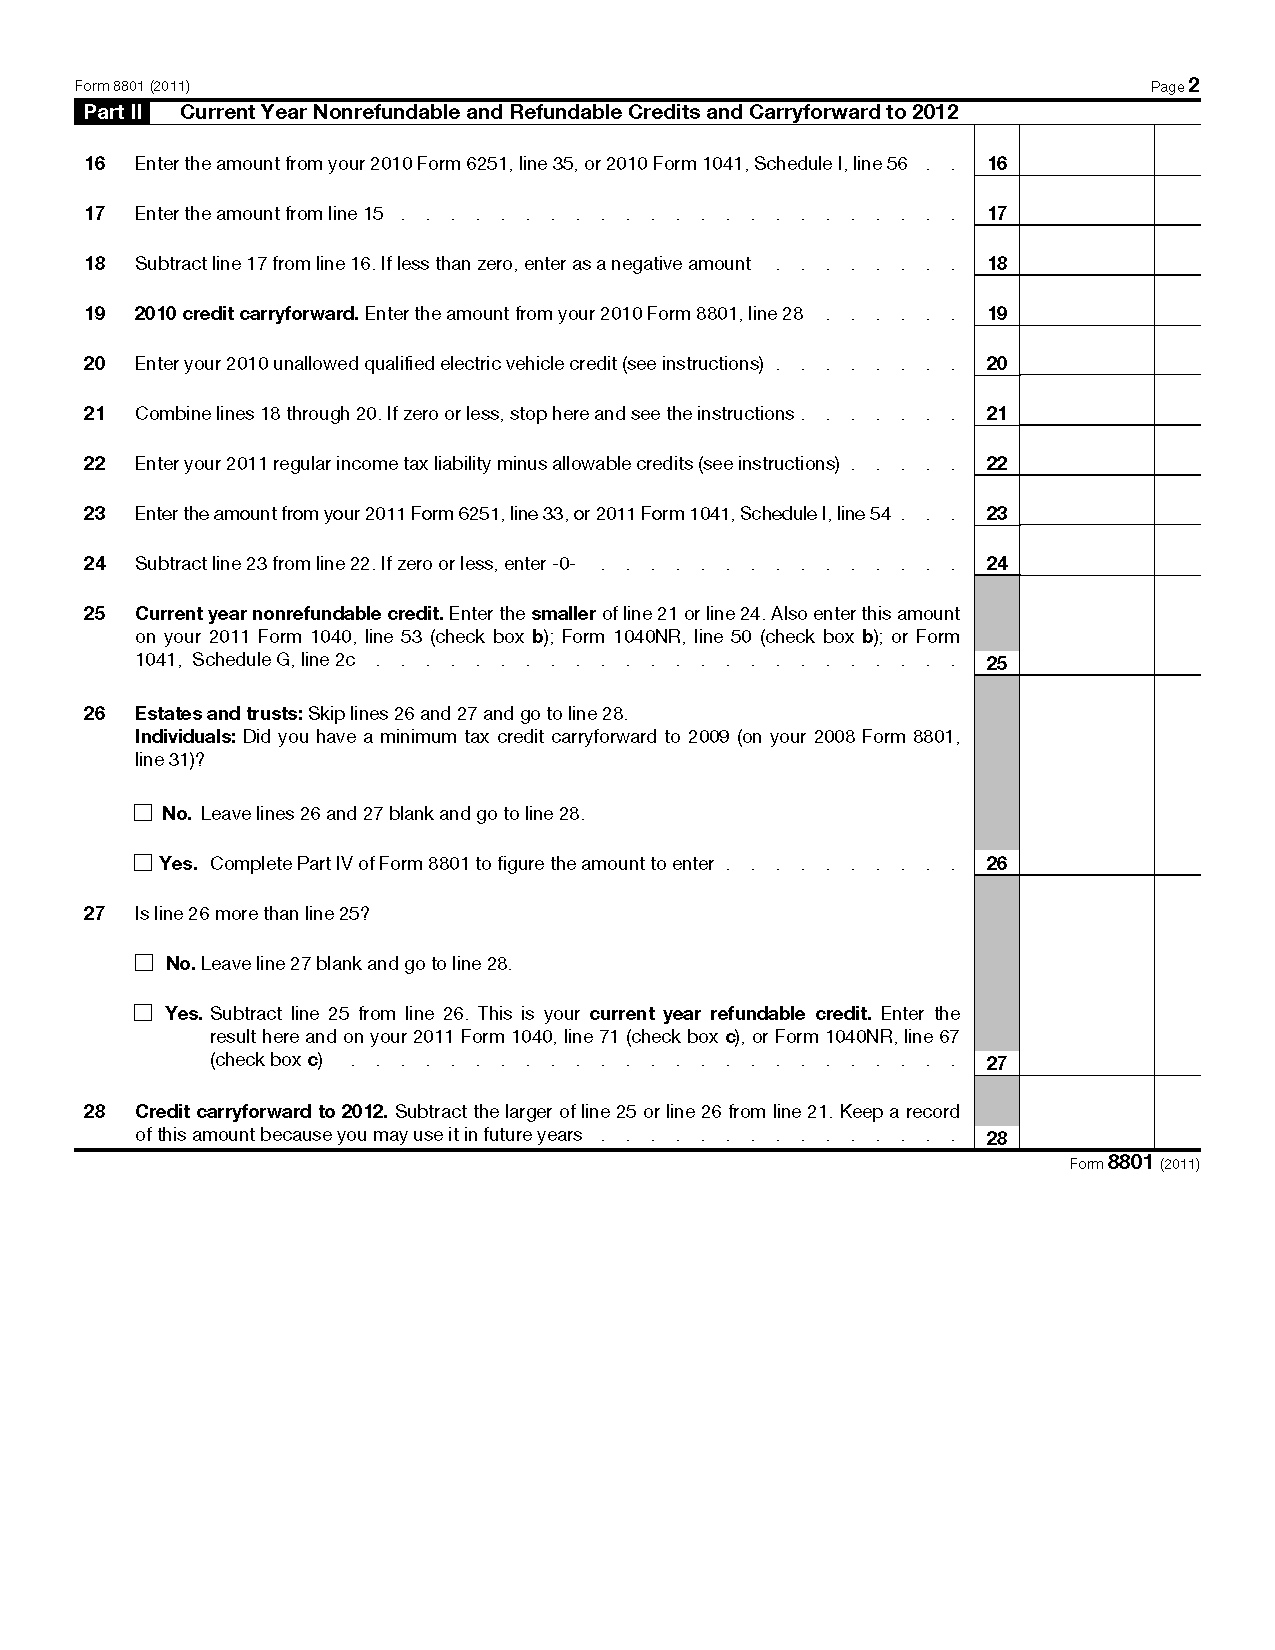 Form Credit For Prior Year Minimum Tax